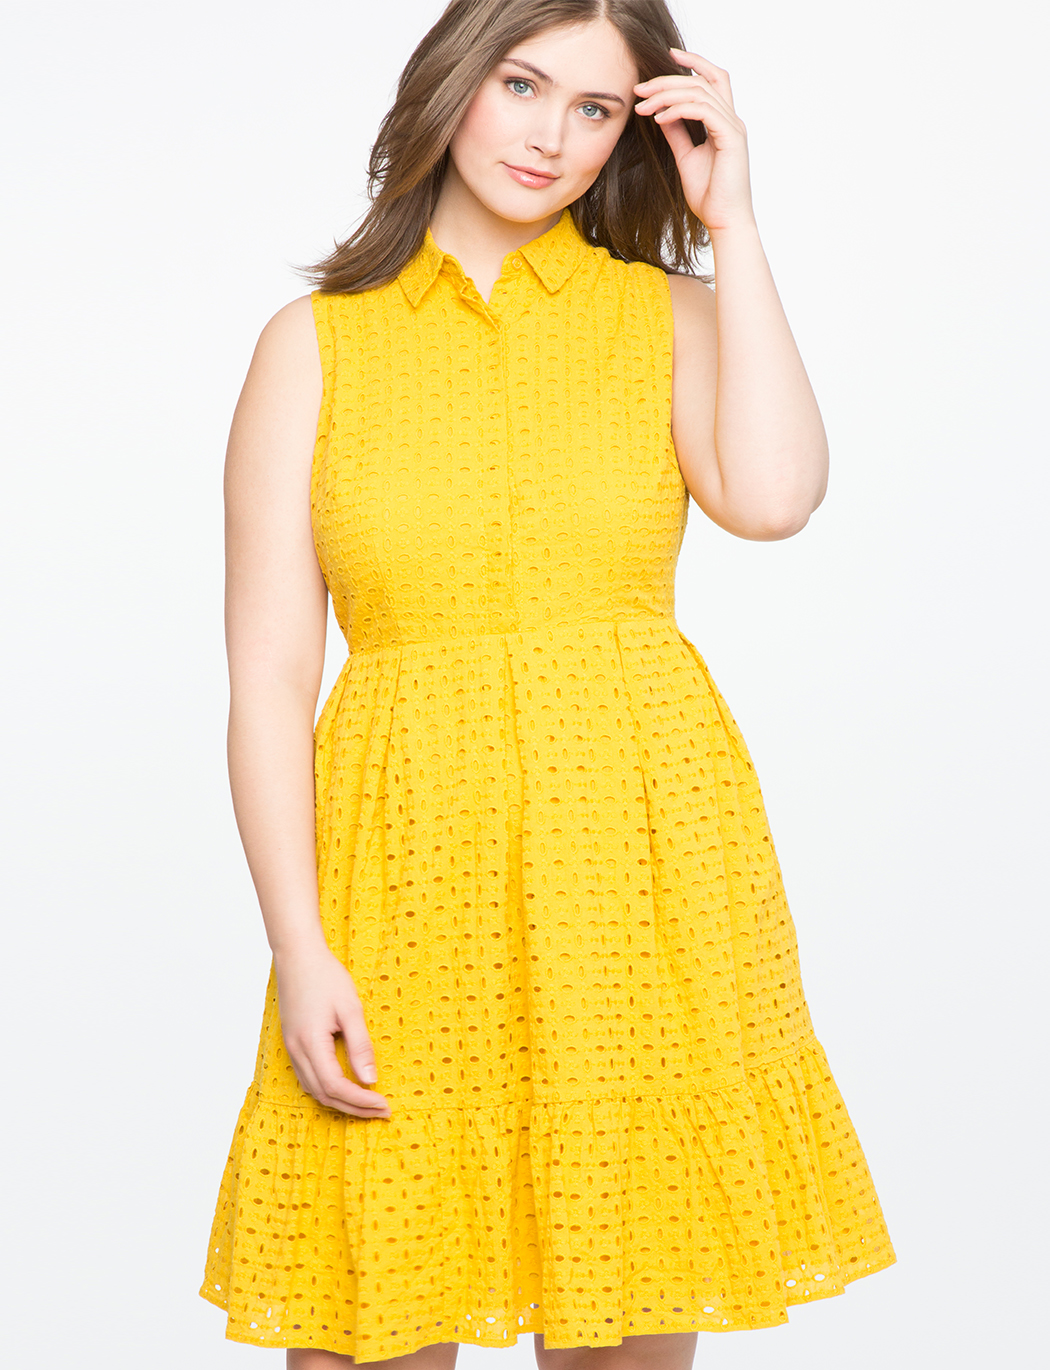 Collared Eyelet Fit and Flare Dress | Women\'s Plus Size Dresses ...